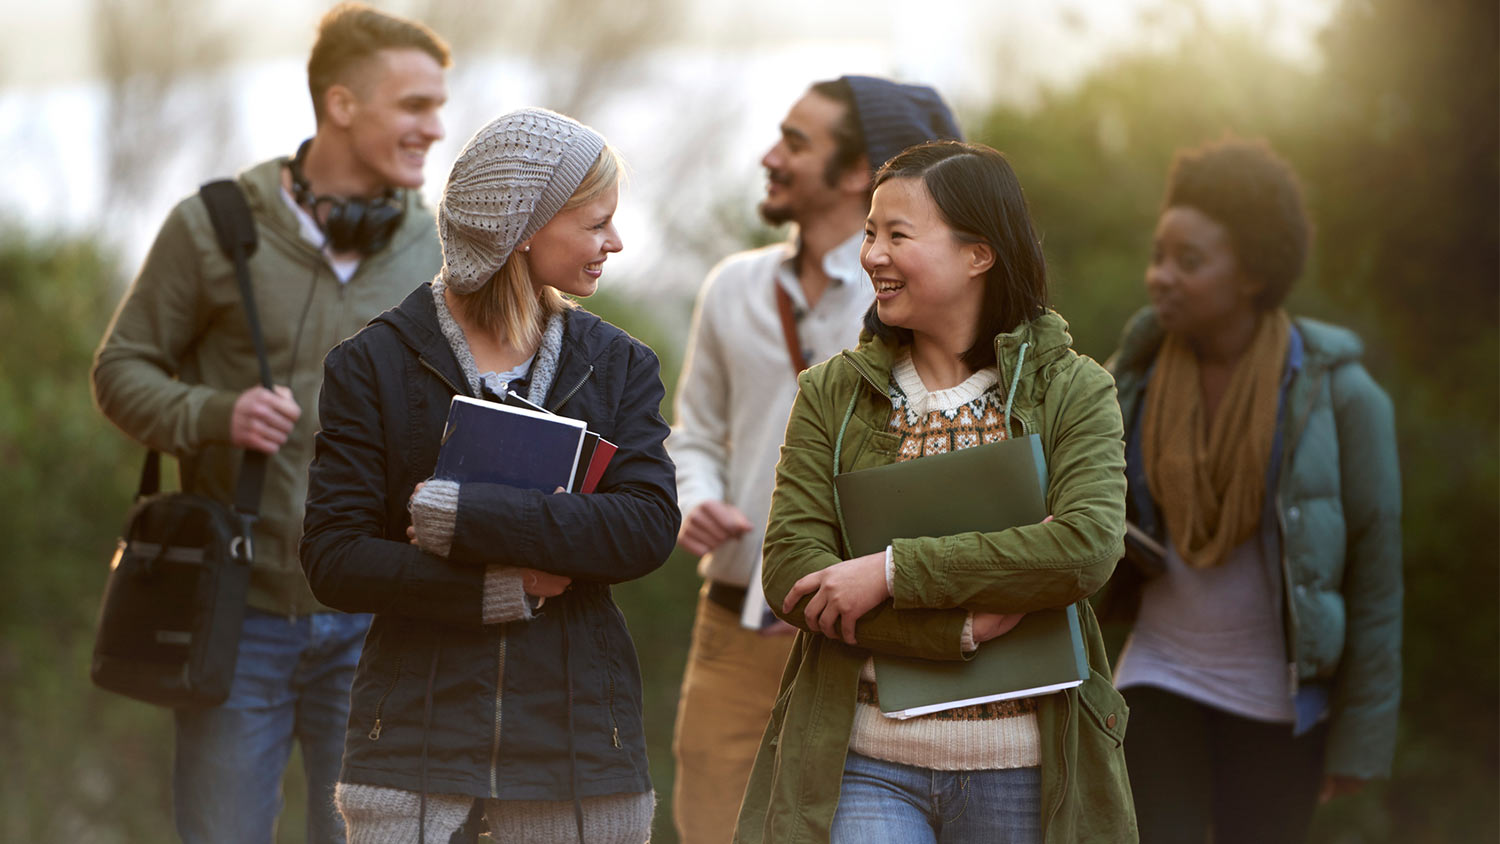 img-students-talking-on-campus